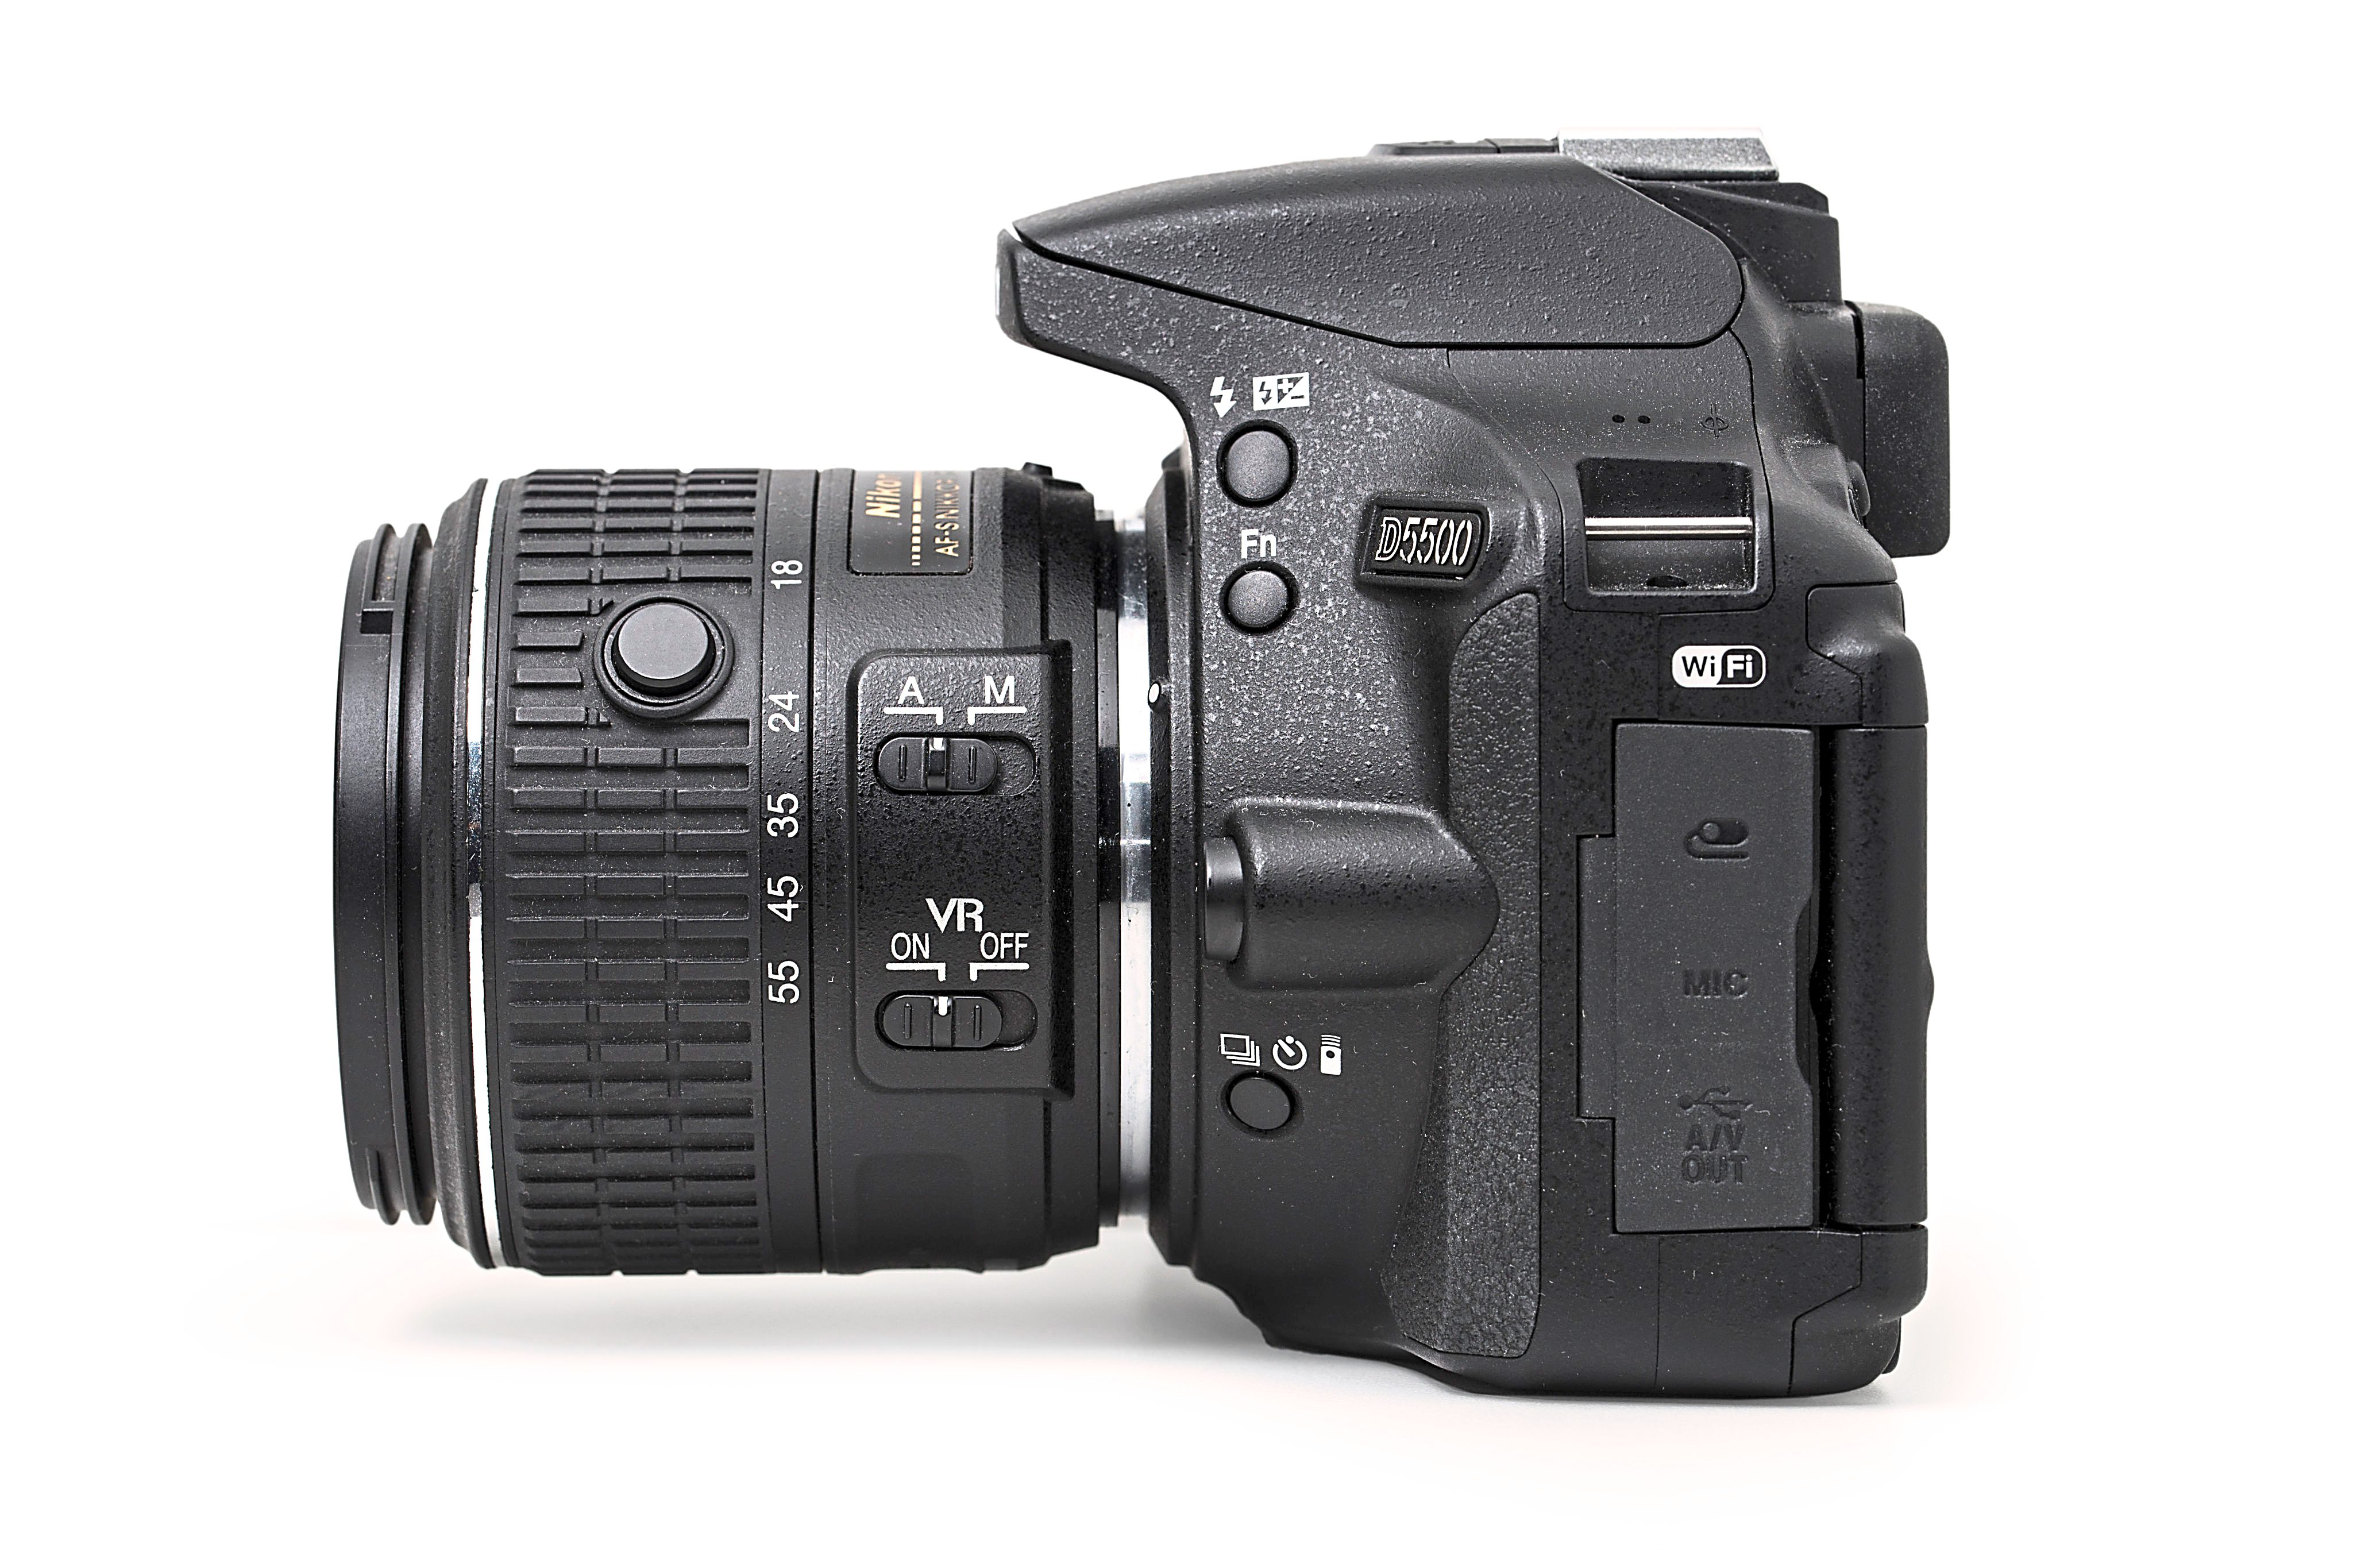 The Nikon D5500 with the 18-55mm collapsible kit lens. The button on the lens allows you to twist the zoom ring into its fully closed position.